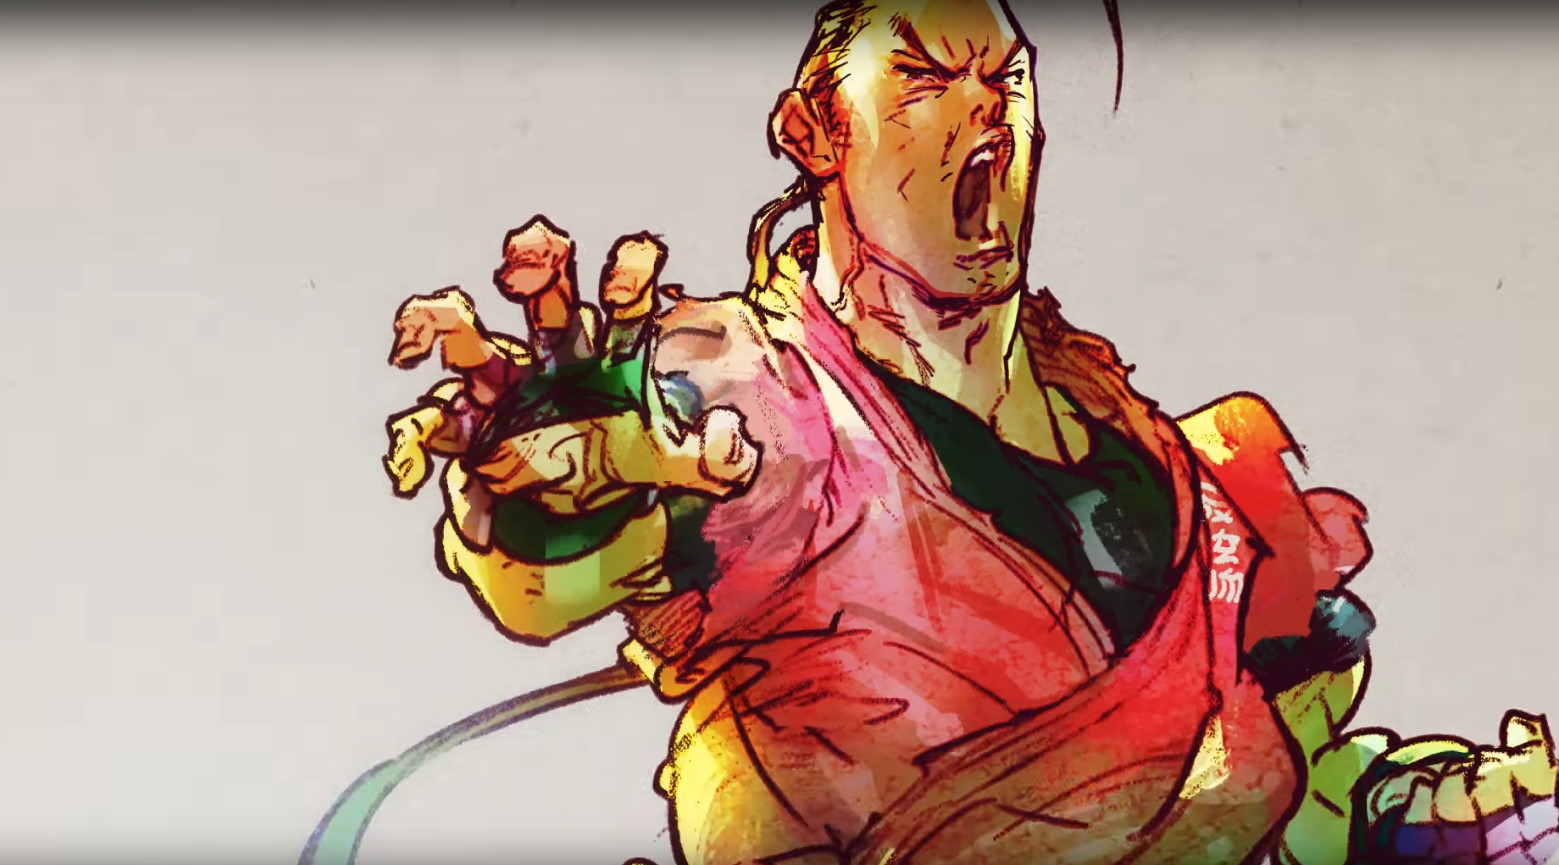 Street Fighter 5's final season will add five new characters, including Akira from Rival Schools